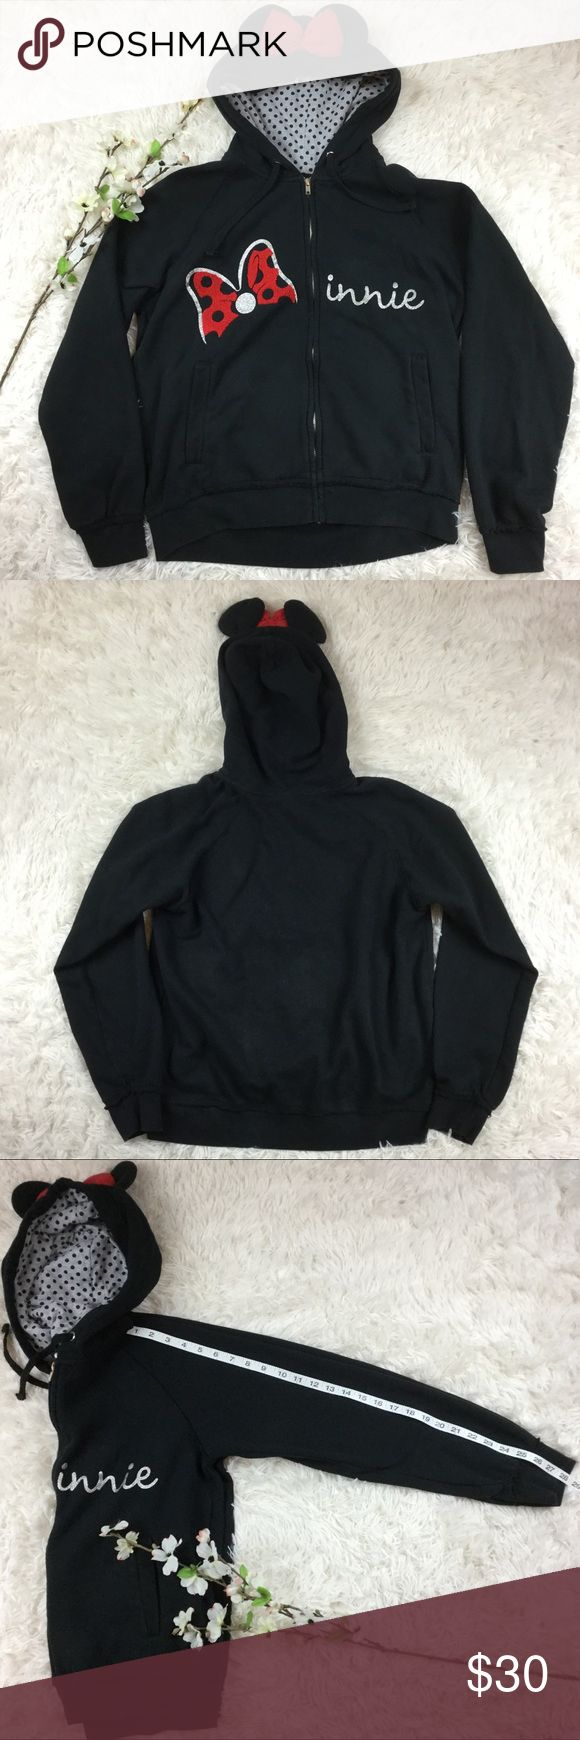 Minnie Mouse black zip up hoodie with ears Black Minnie Mouse hoodie with full front zip. Size L, approx measurements included above. Good condition hoodie, may have some fading to the fabric. Features Minnie on the front in soft textures material. Has polka dot print lined hood and classic mini mouse ears and re now. Open to offers or bundle with any other item to save instantly! Disney Jackets & Coats